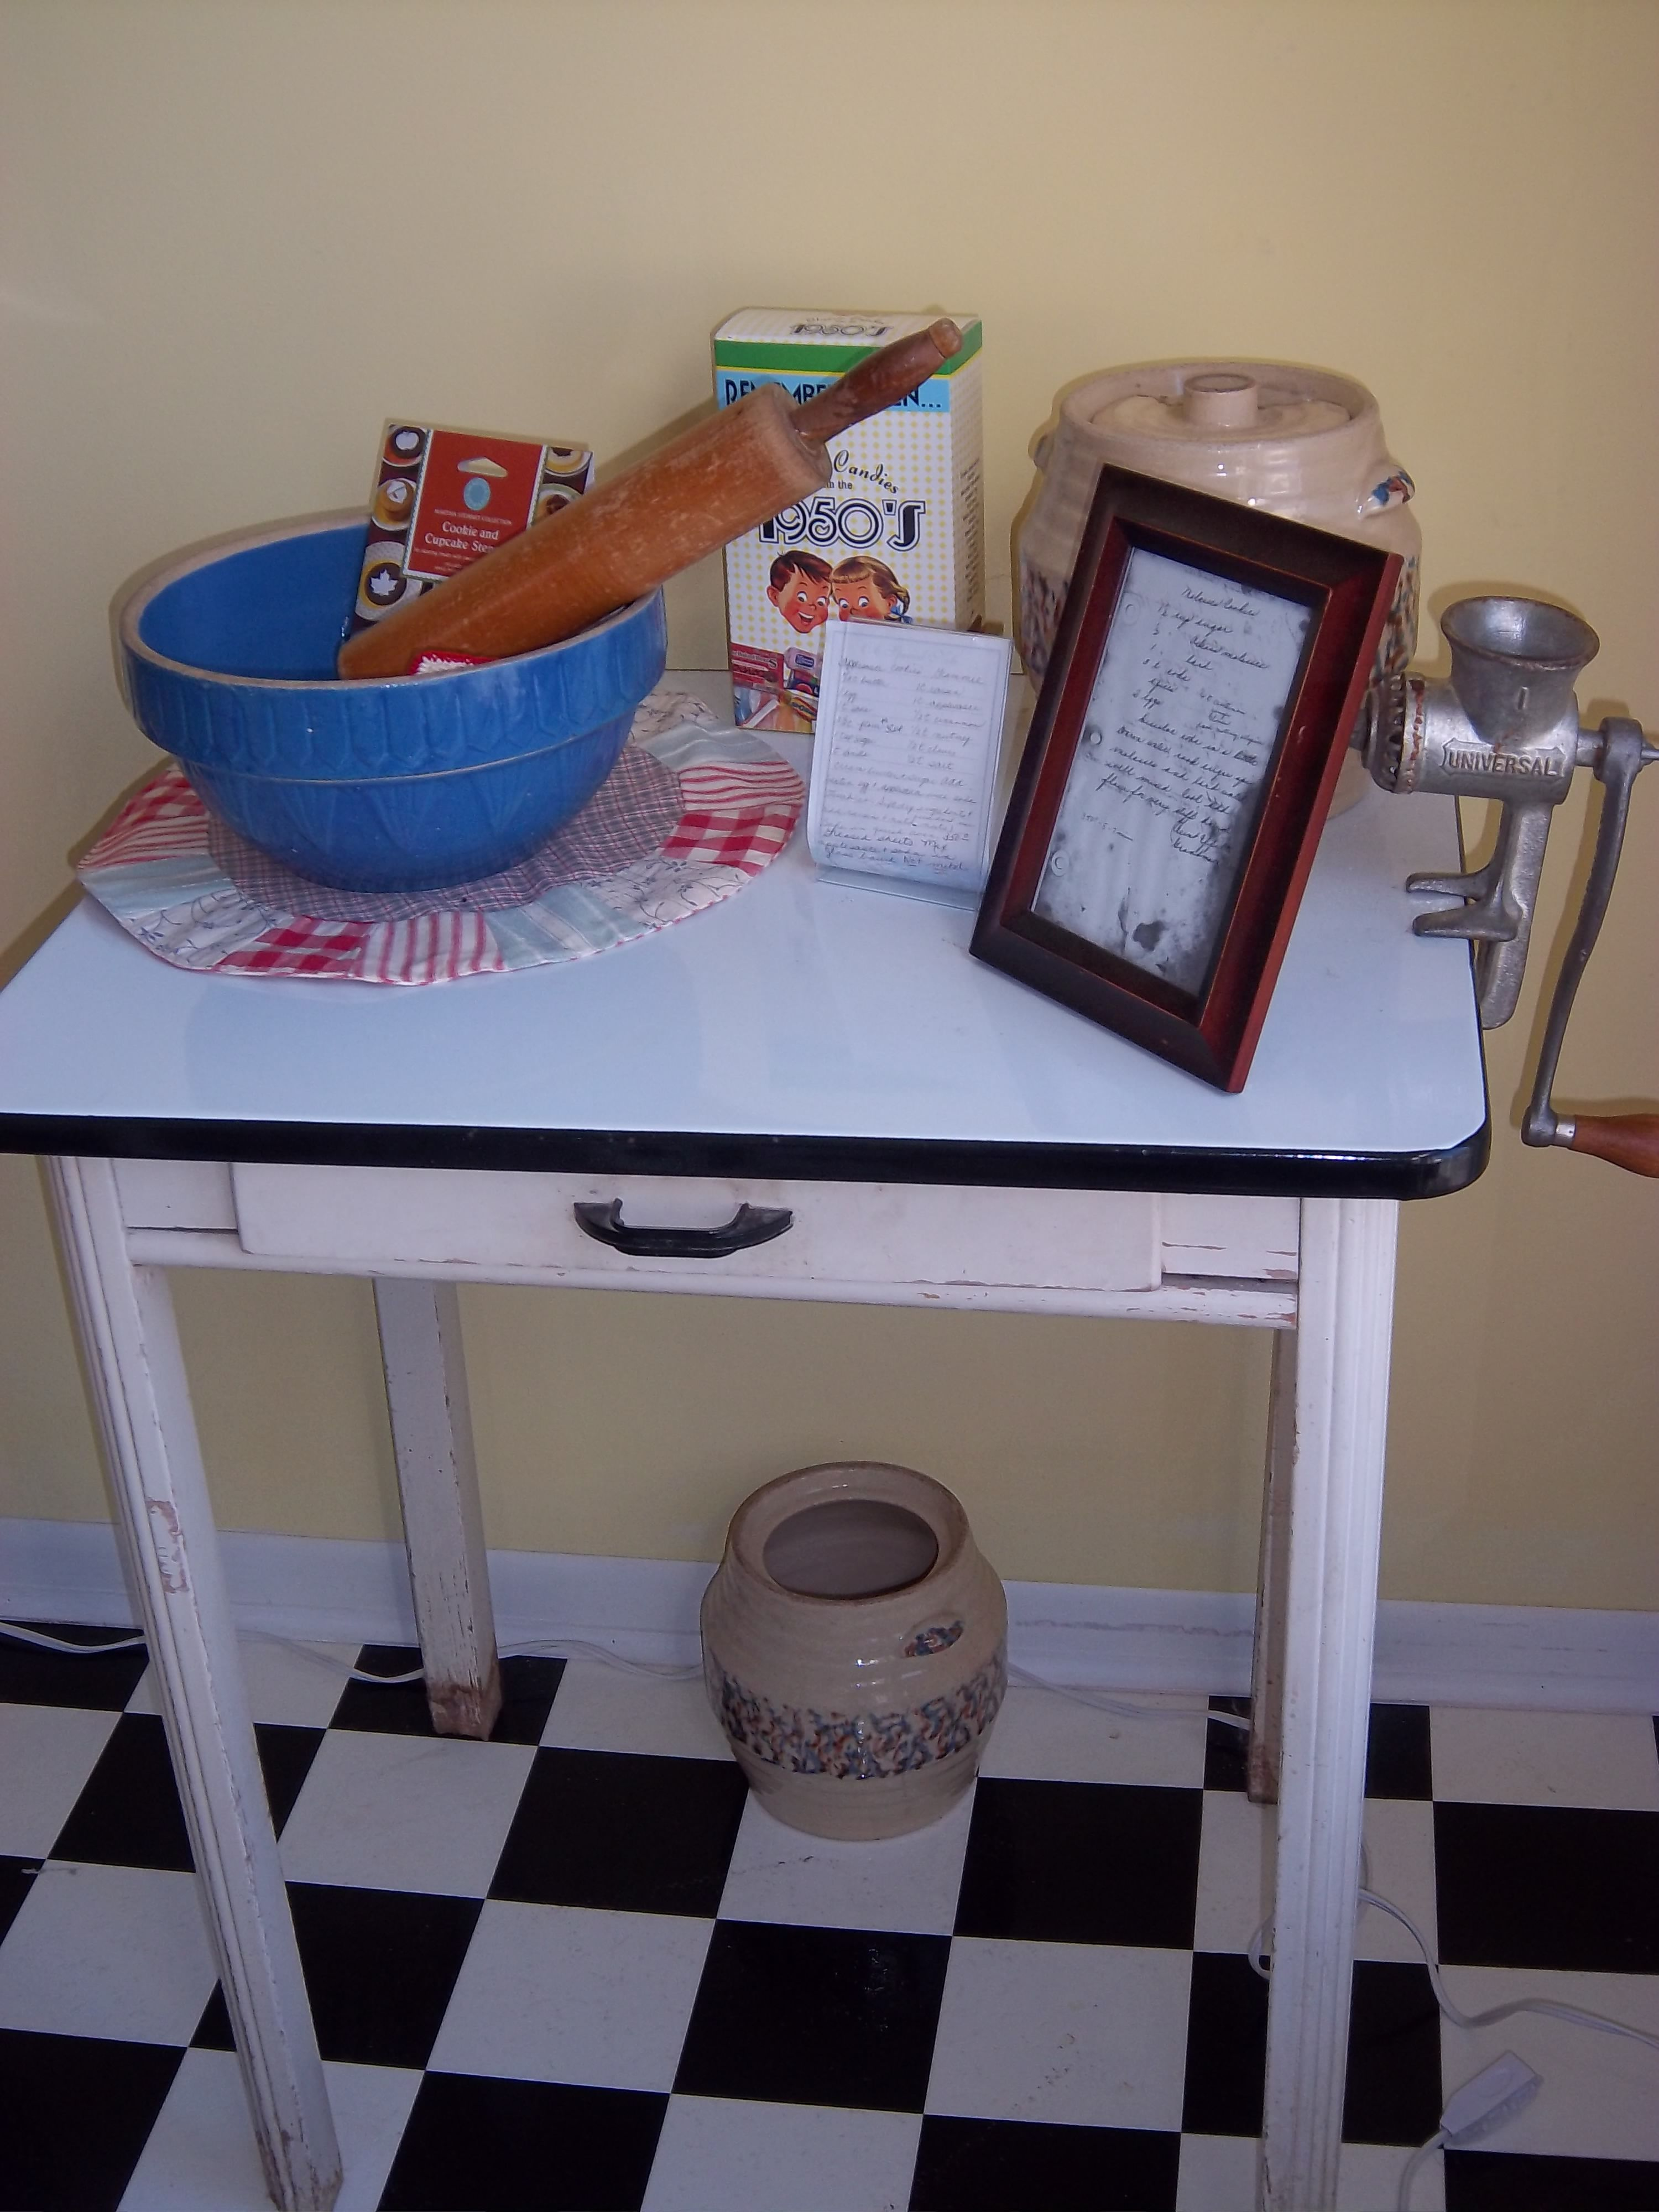 vintage kitchen tables Enamel top table with vintage kitchen items